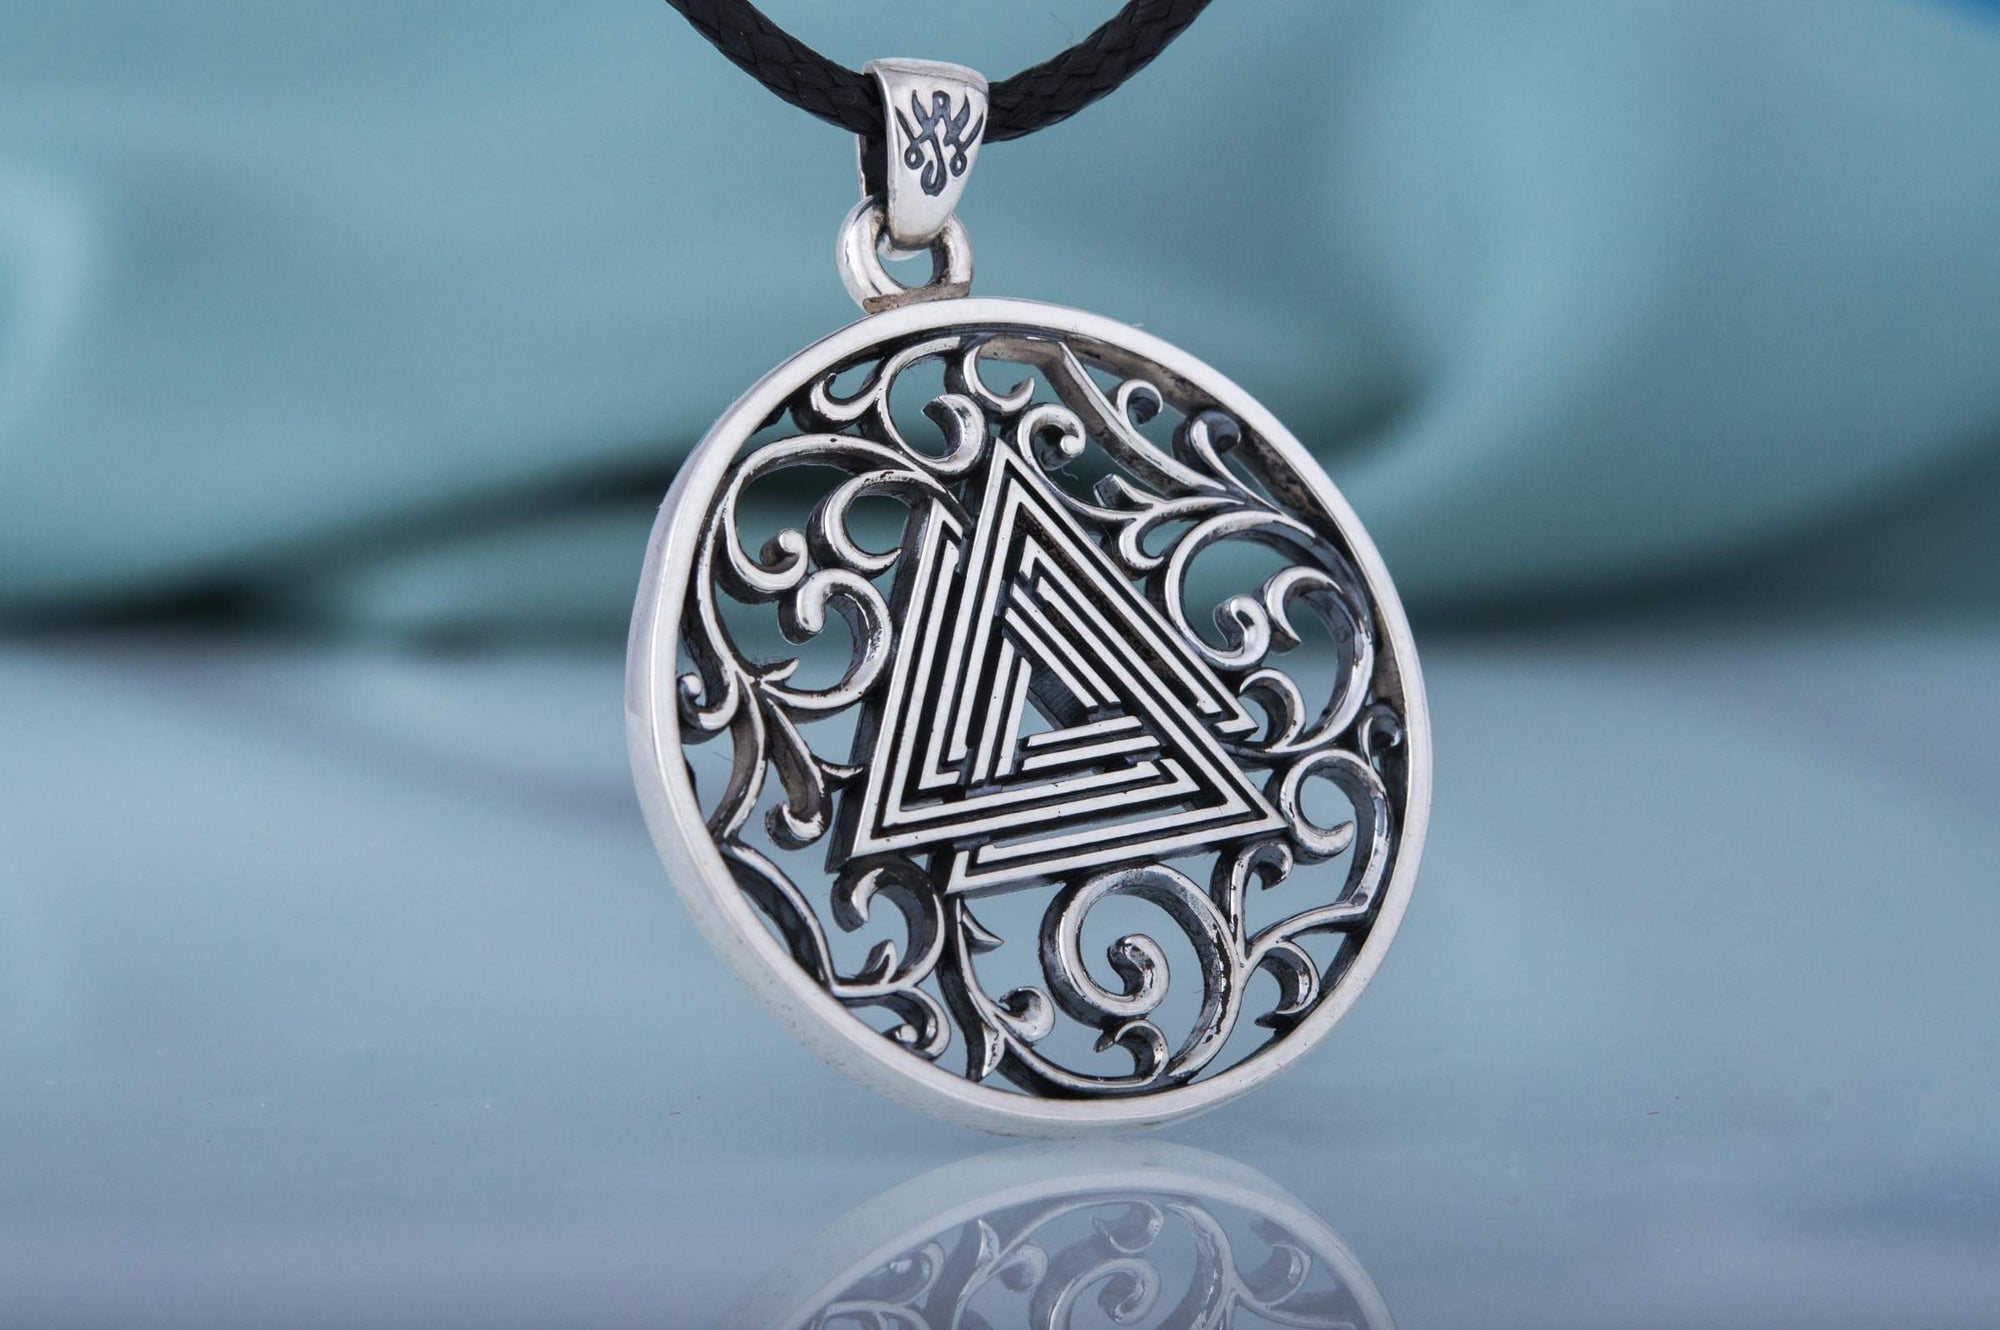 Vikings Valknut Symbol Sterling Silver Pendant with Scrollwork Art